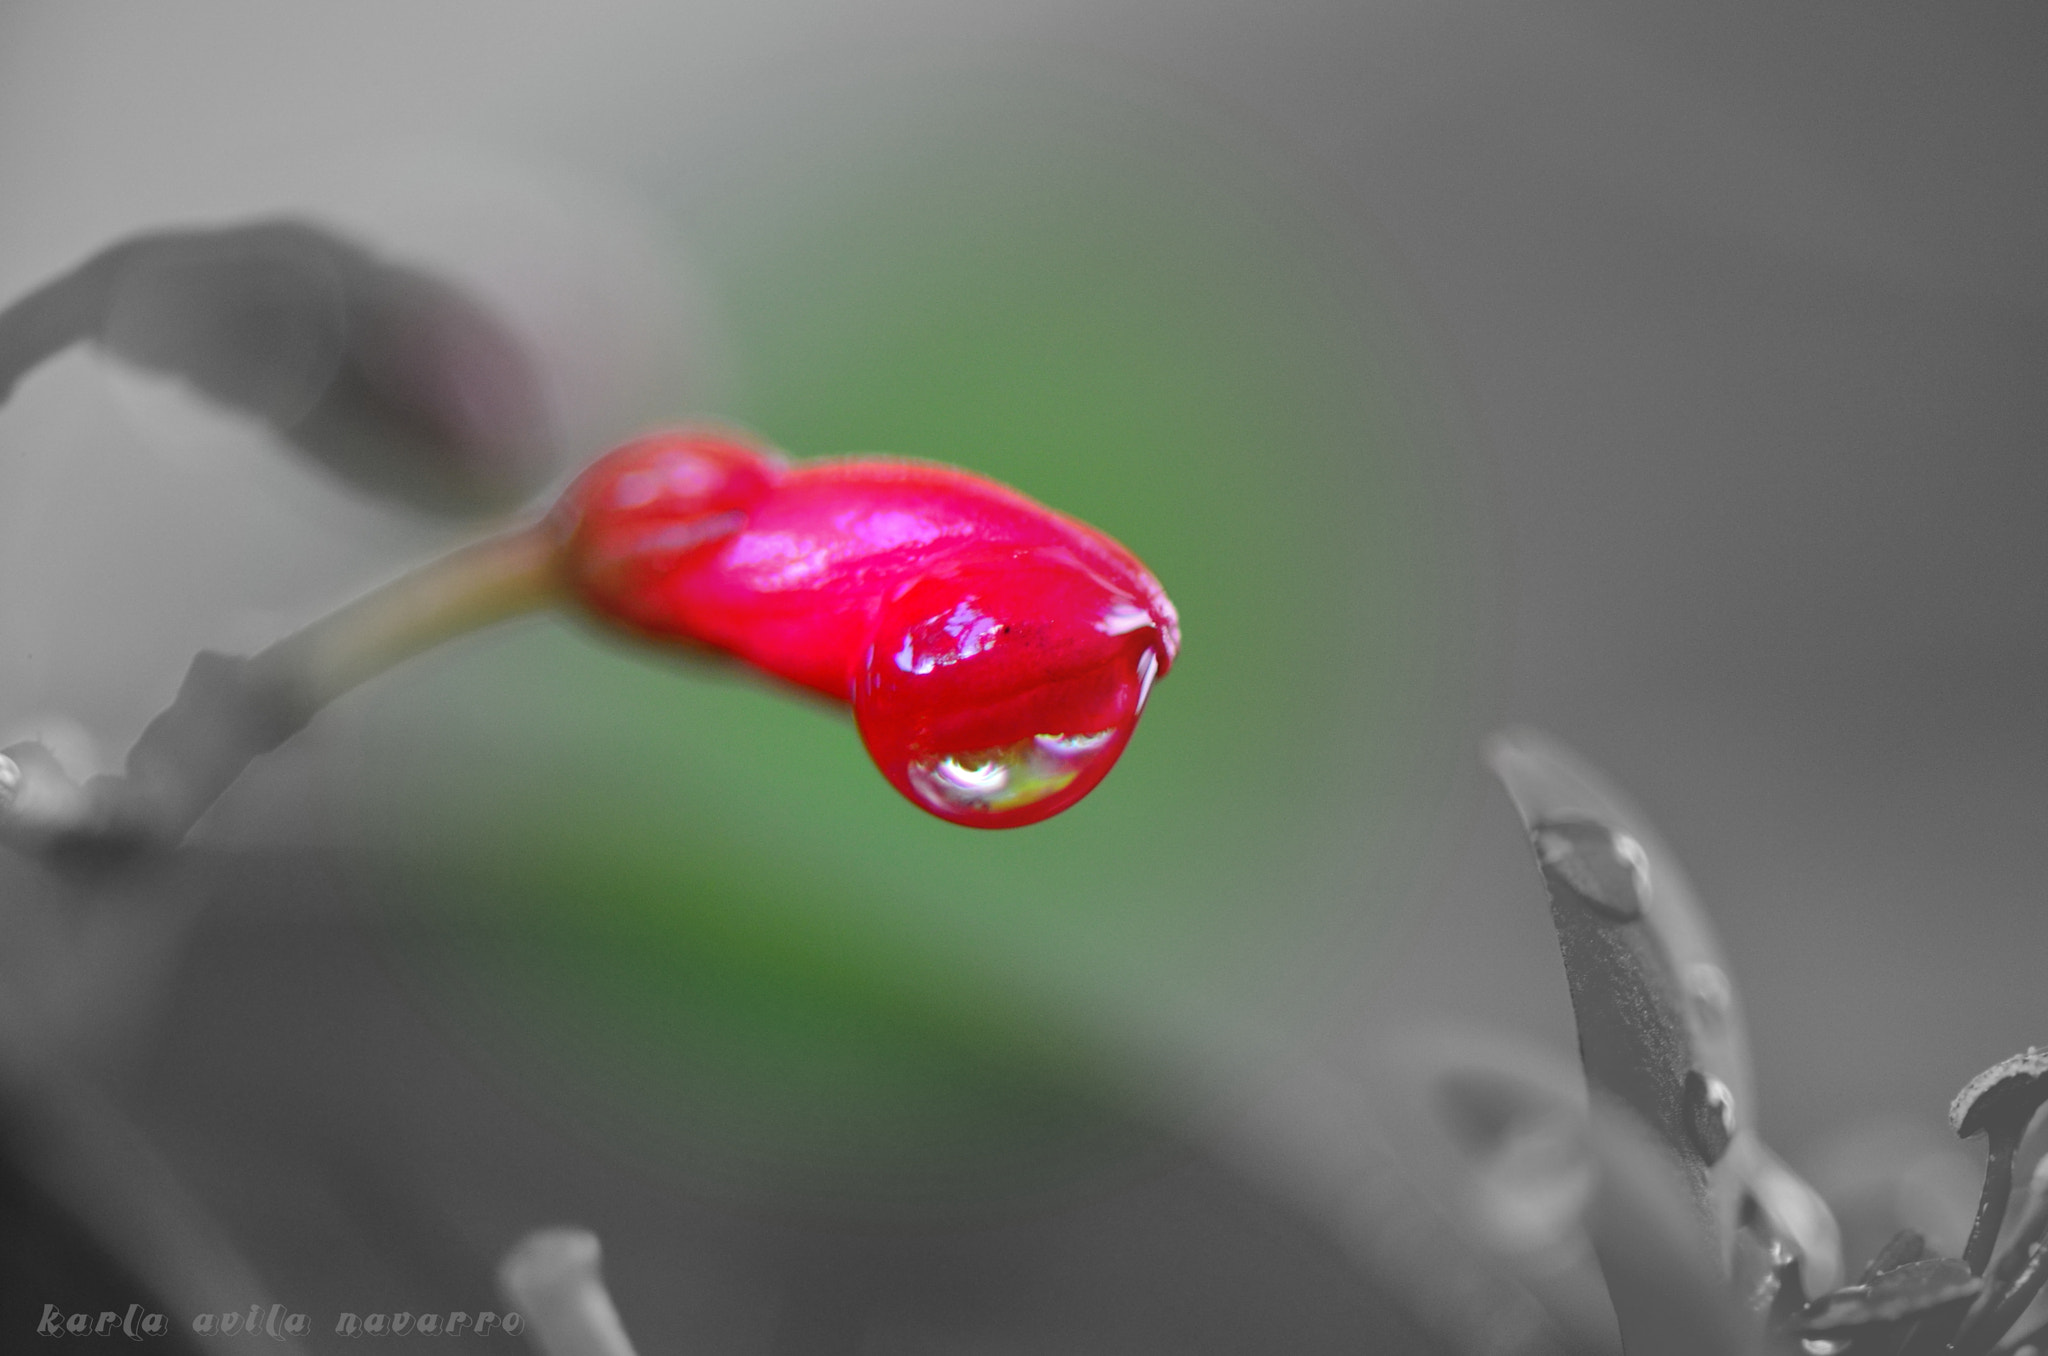 Photograph for the love of a hanging drop by karla avilanavarro on 500px